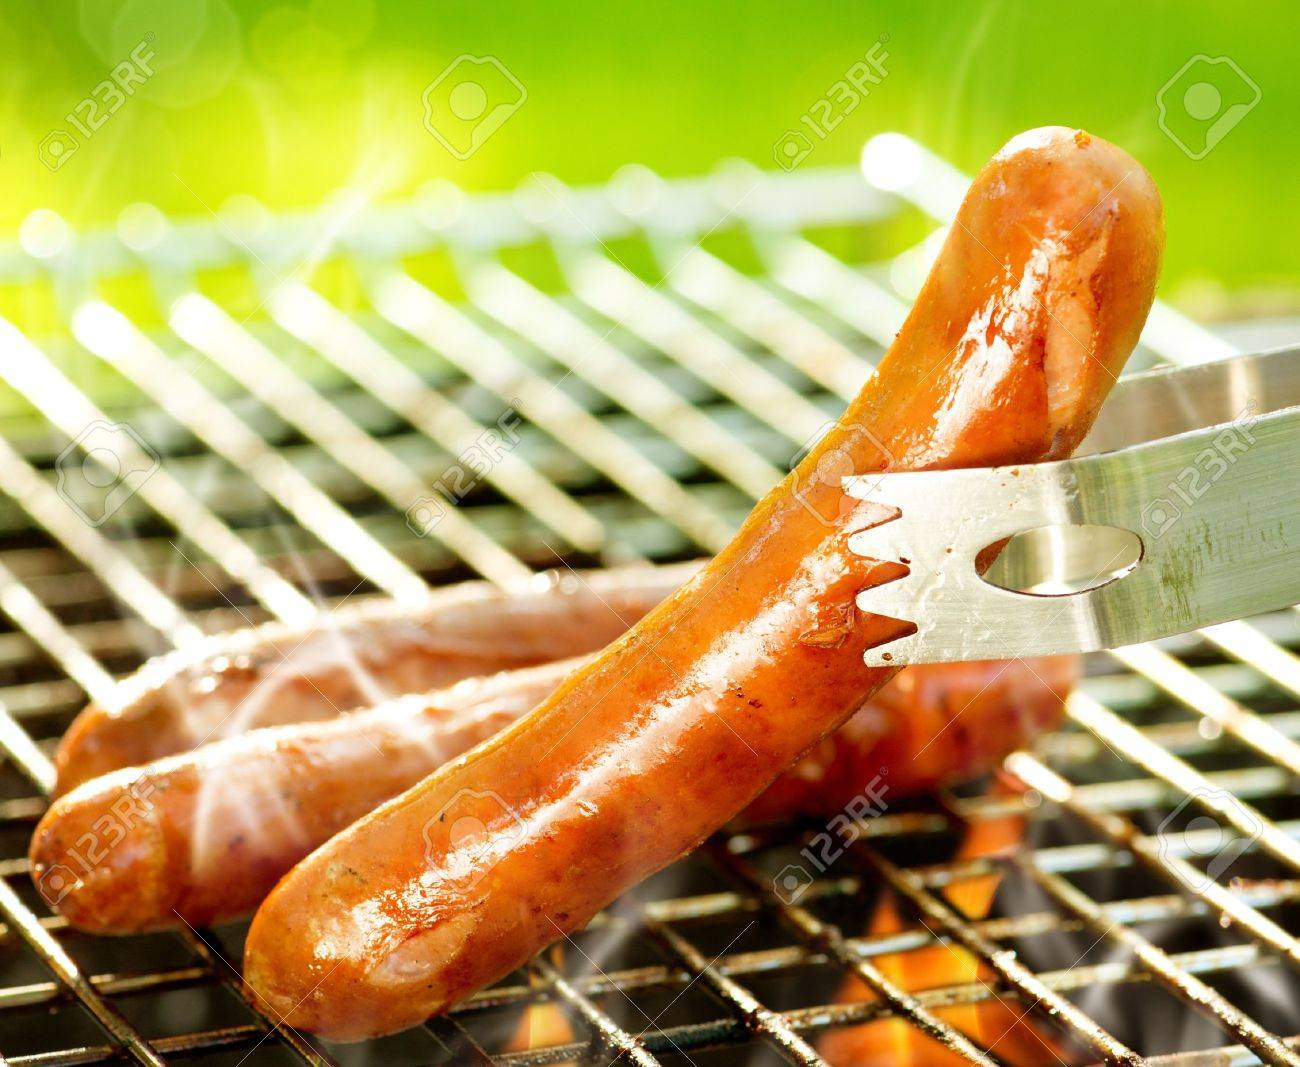 Grilled Sausage on the flaming Grill BBQ Bearbeque outdoors - 19574255